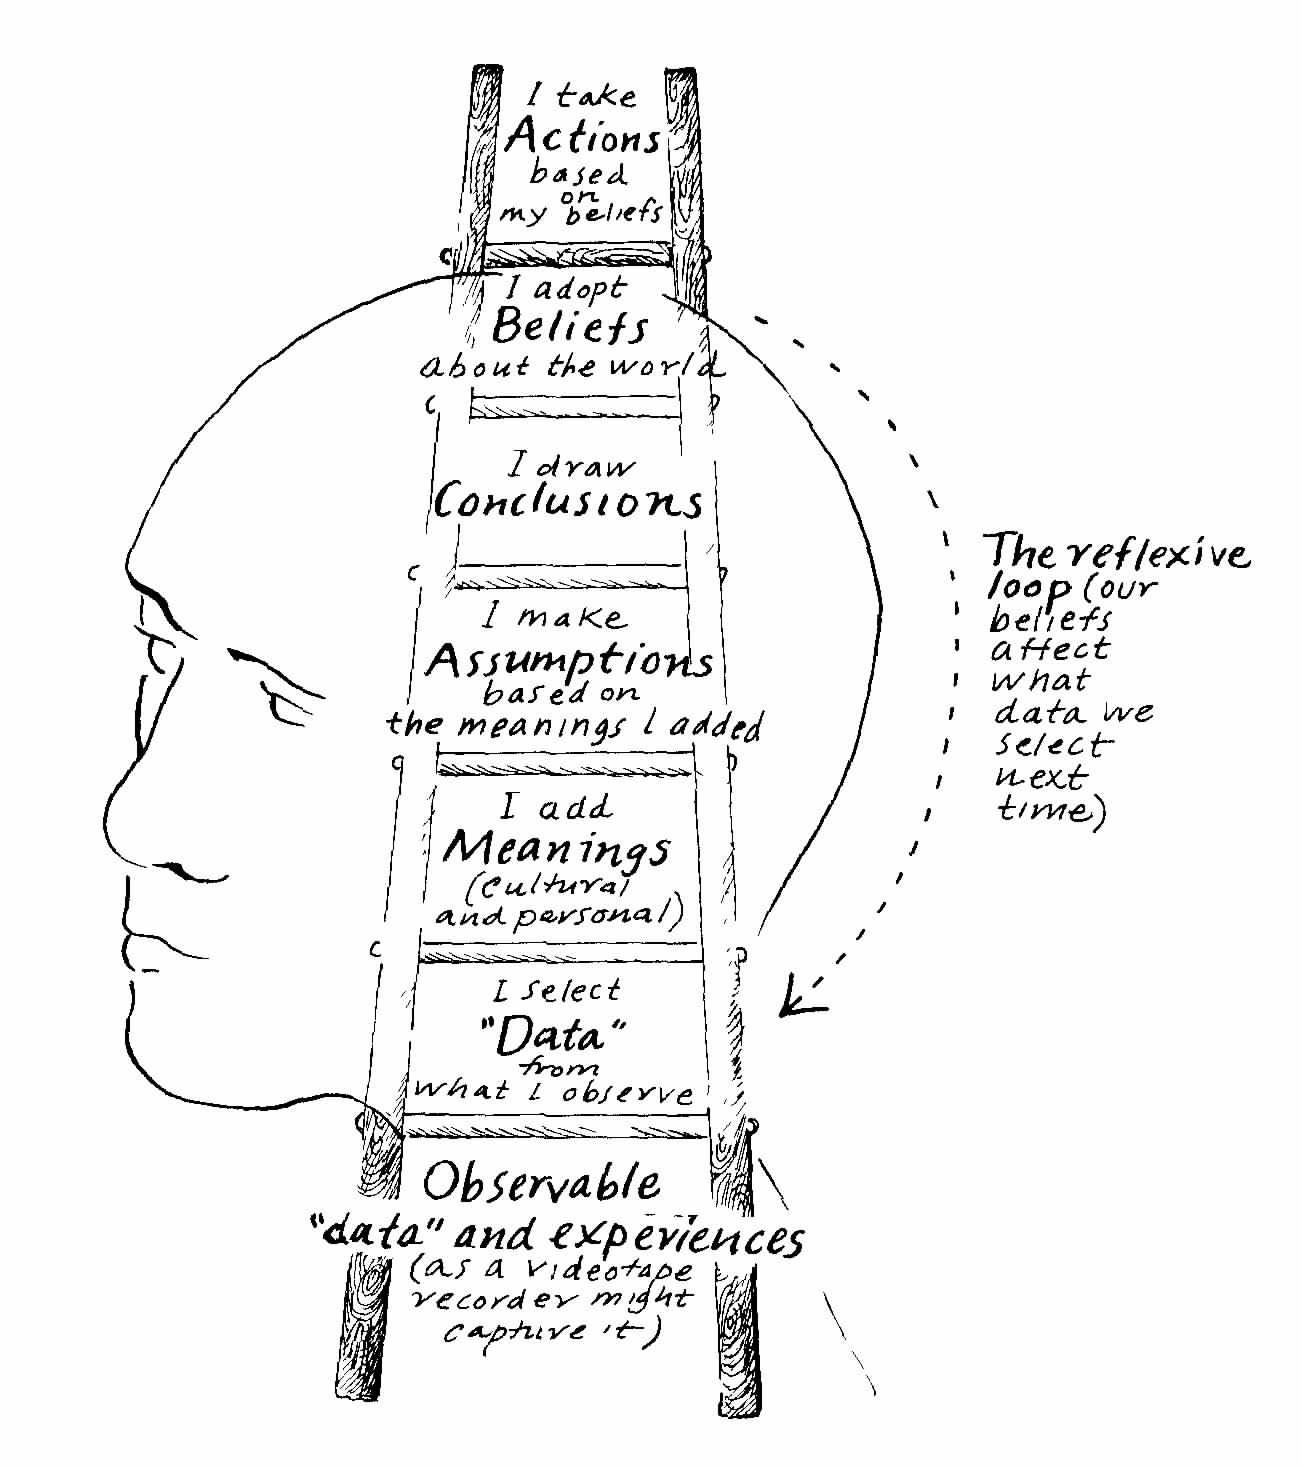 ladder_of_inference.jpg